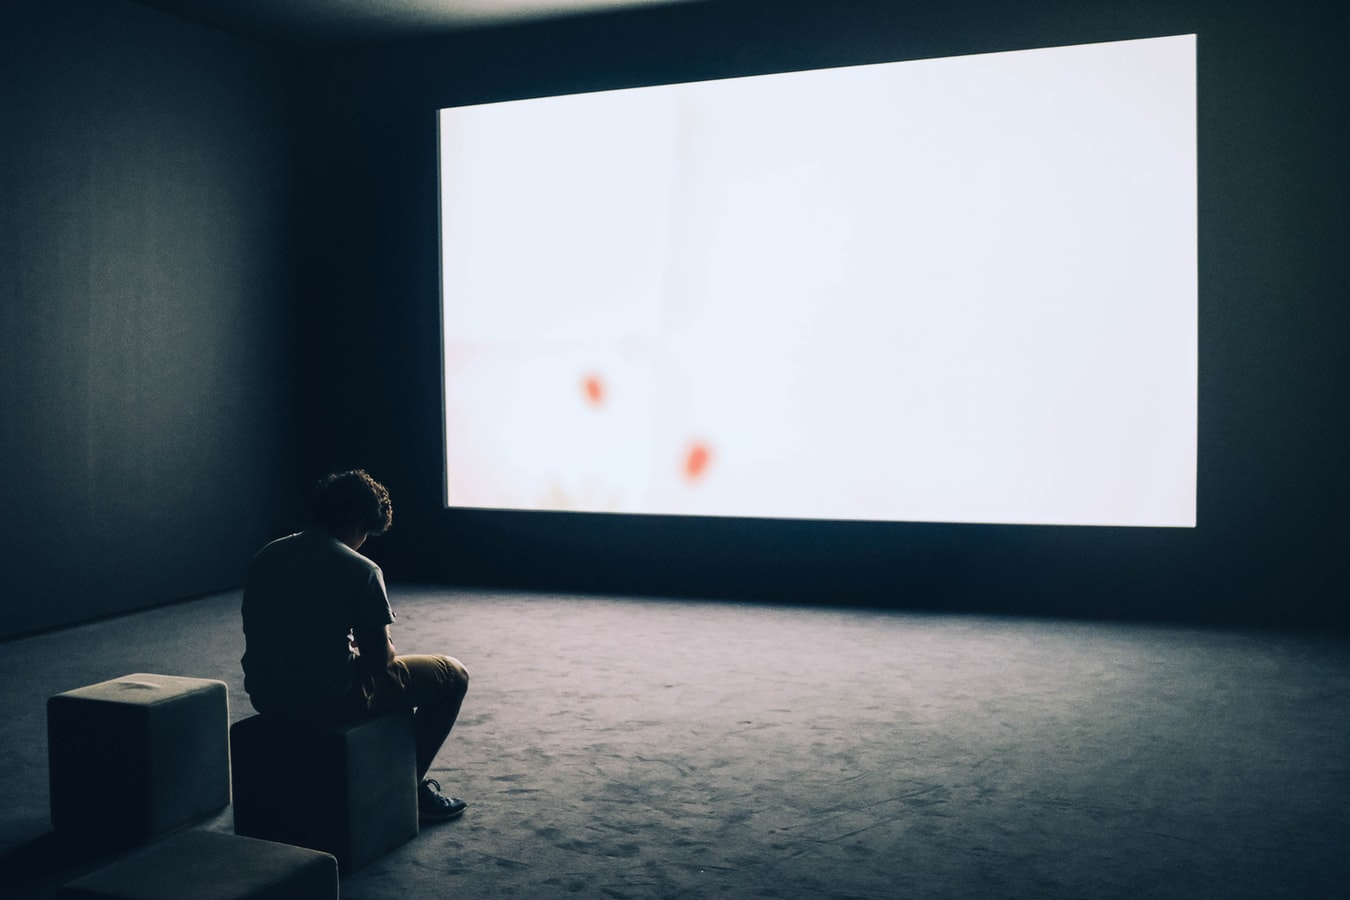 Lonely, sad man sitting in front of white projector screen